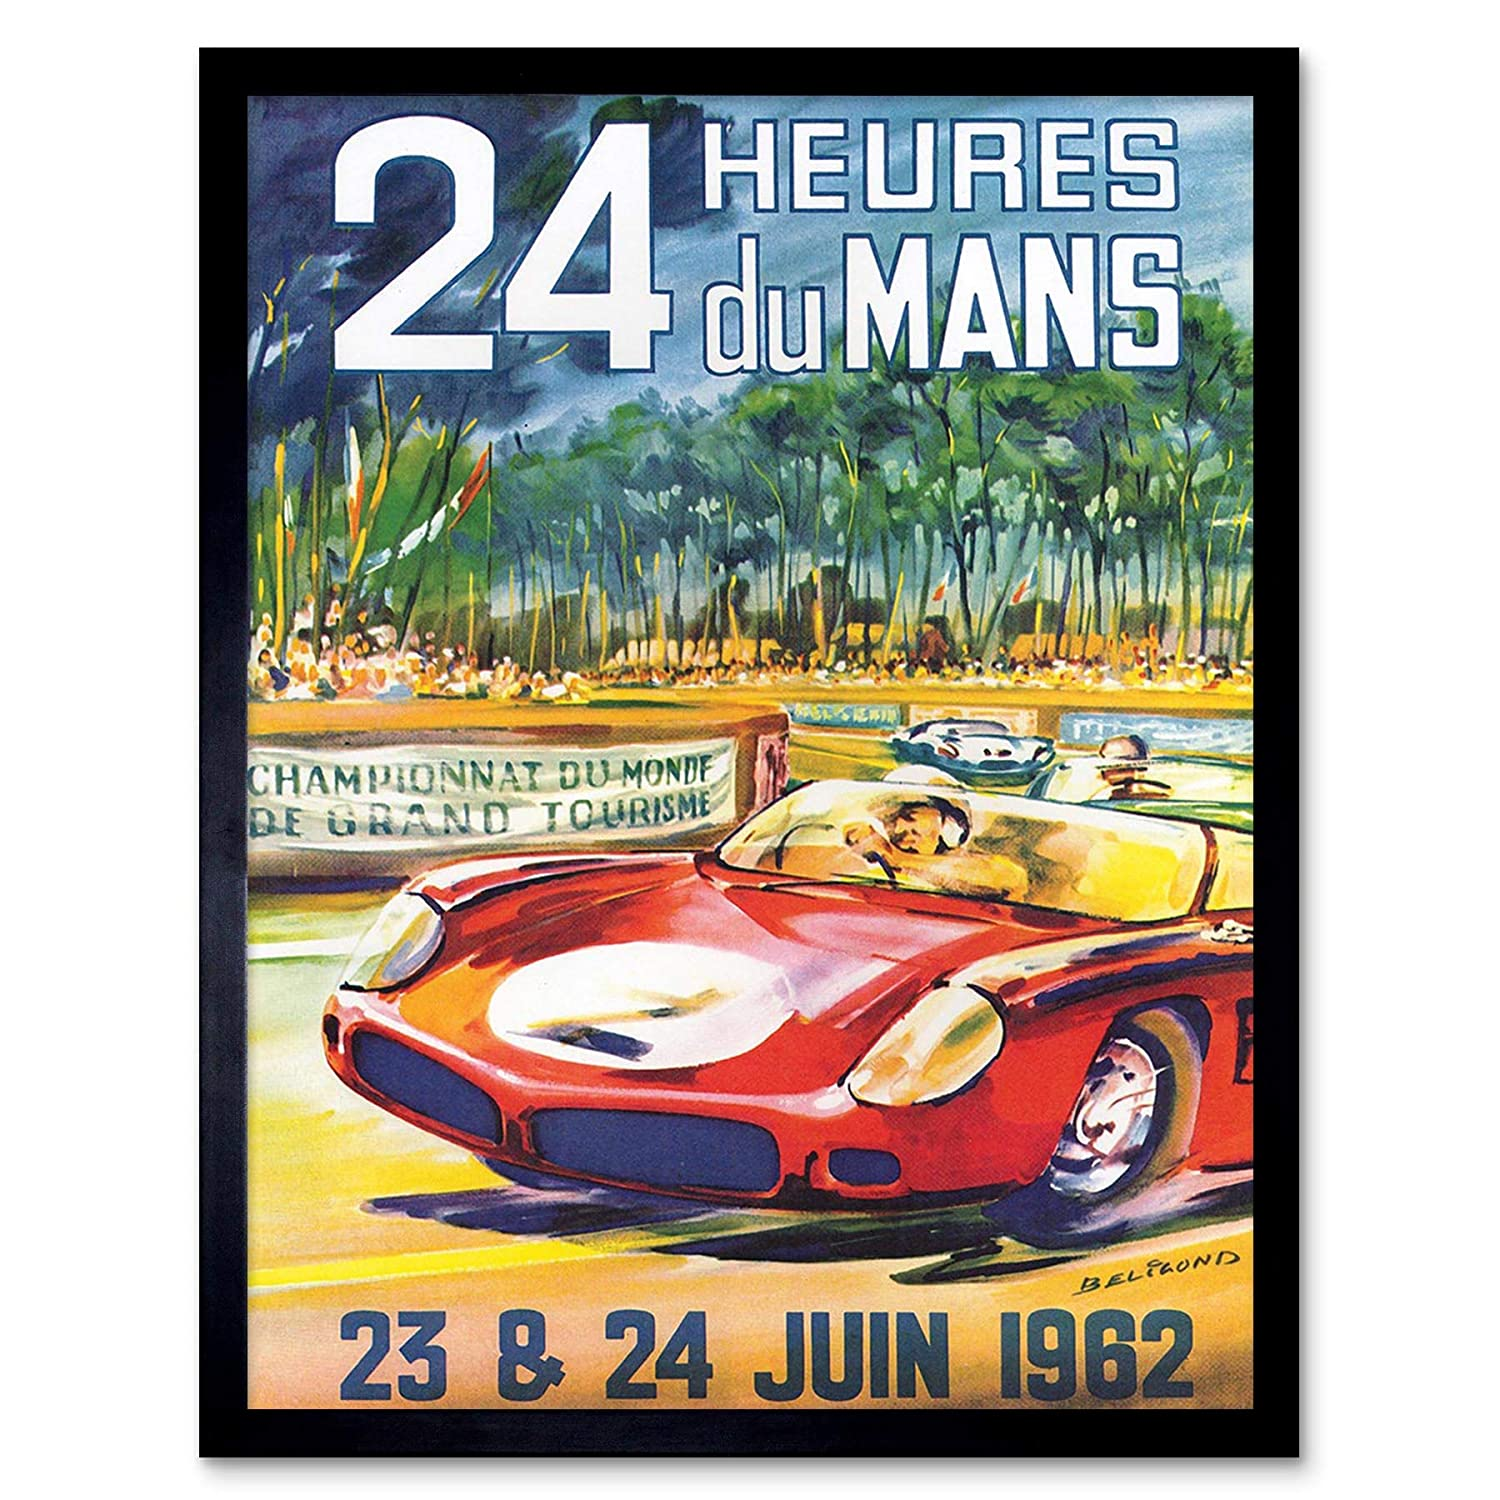 Wee Blue Coo Advert Race Car Racing Automobile Classic 24 Heures Du Mans Unframed Wall Art Print Poster Home Decor Premium